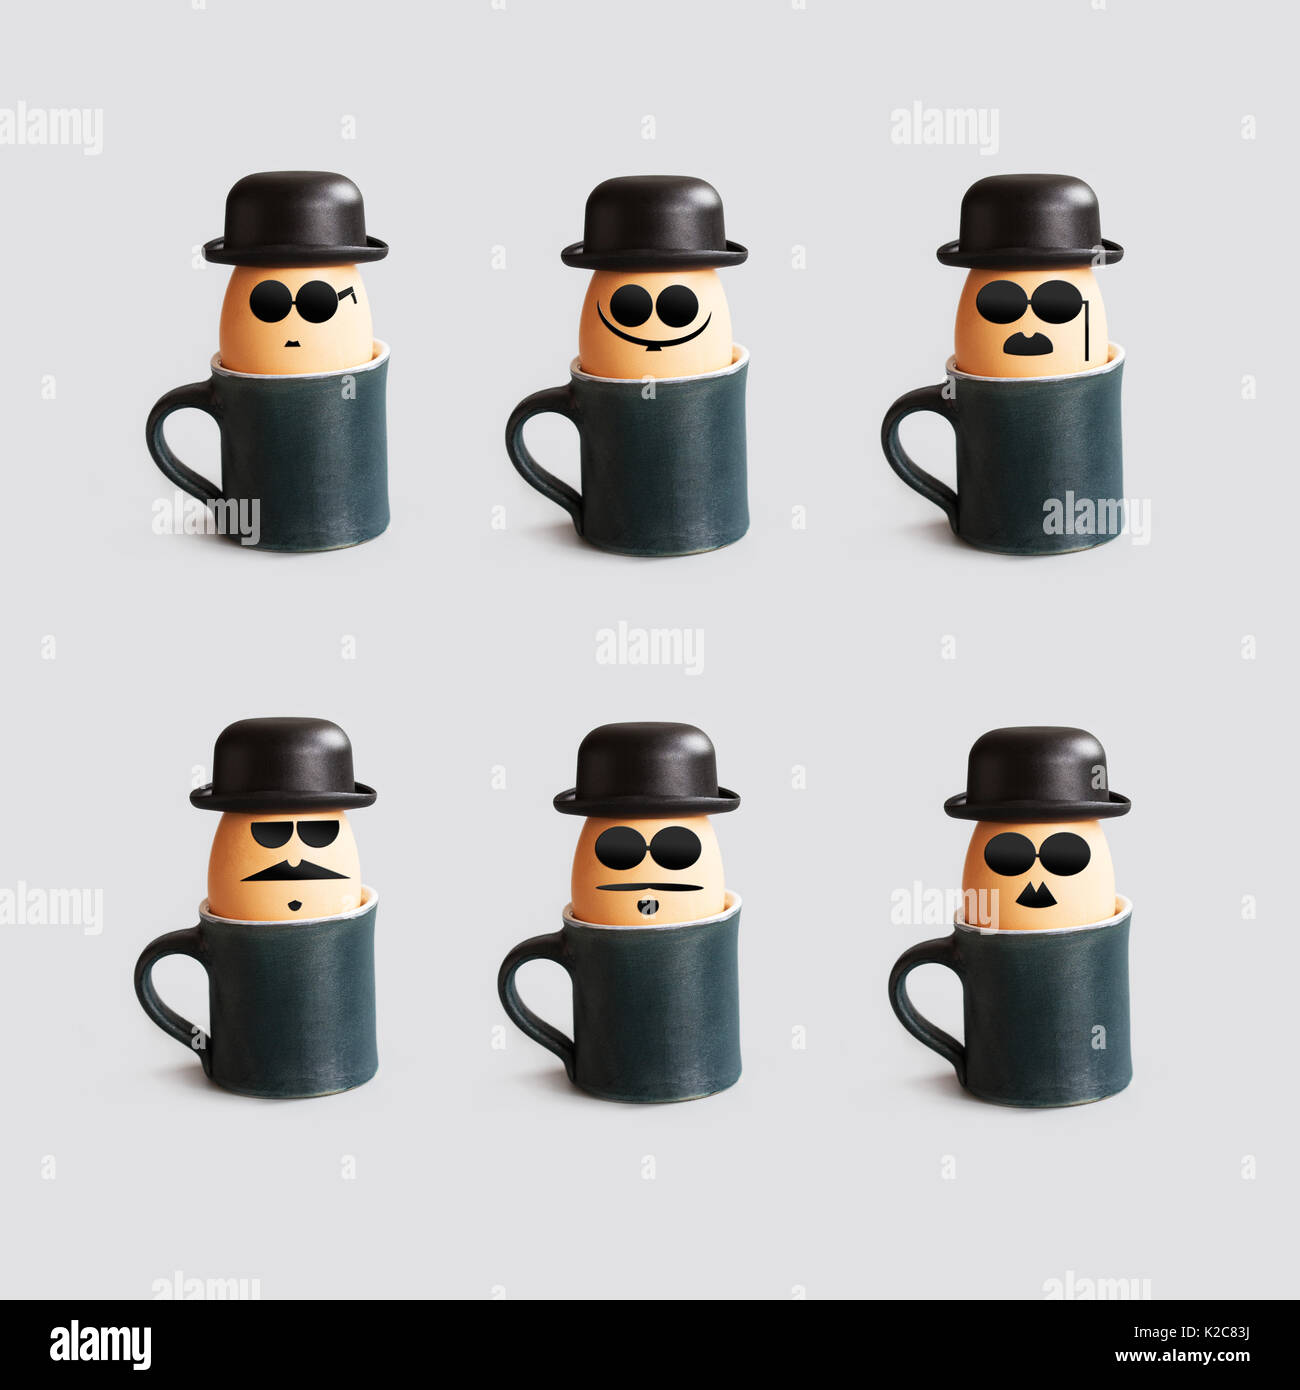 Hipster breakfast egg characters with mustache, beard, black bowler hat and glasses. Creative design holiday poster eggs cups. drawn gentleman faces vintage style. gray background. - Stock Image